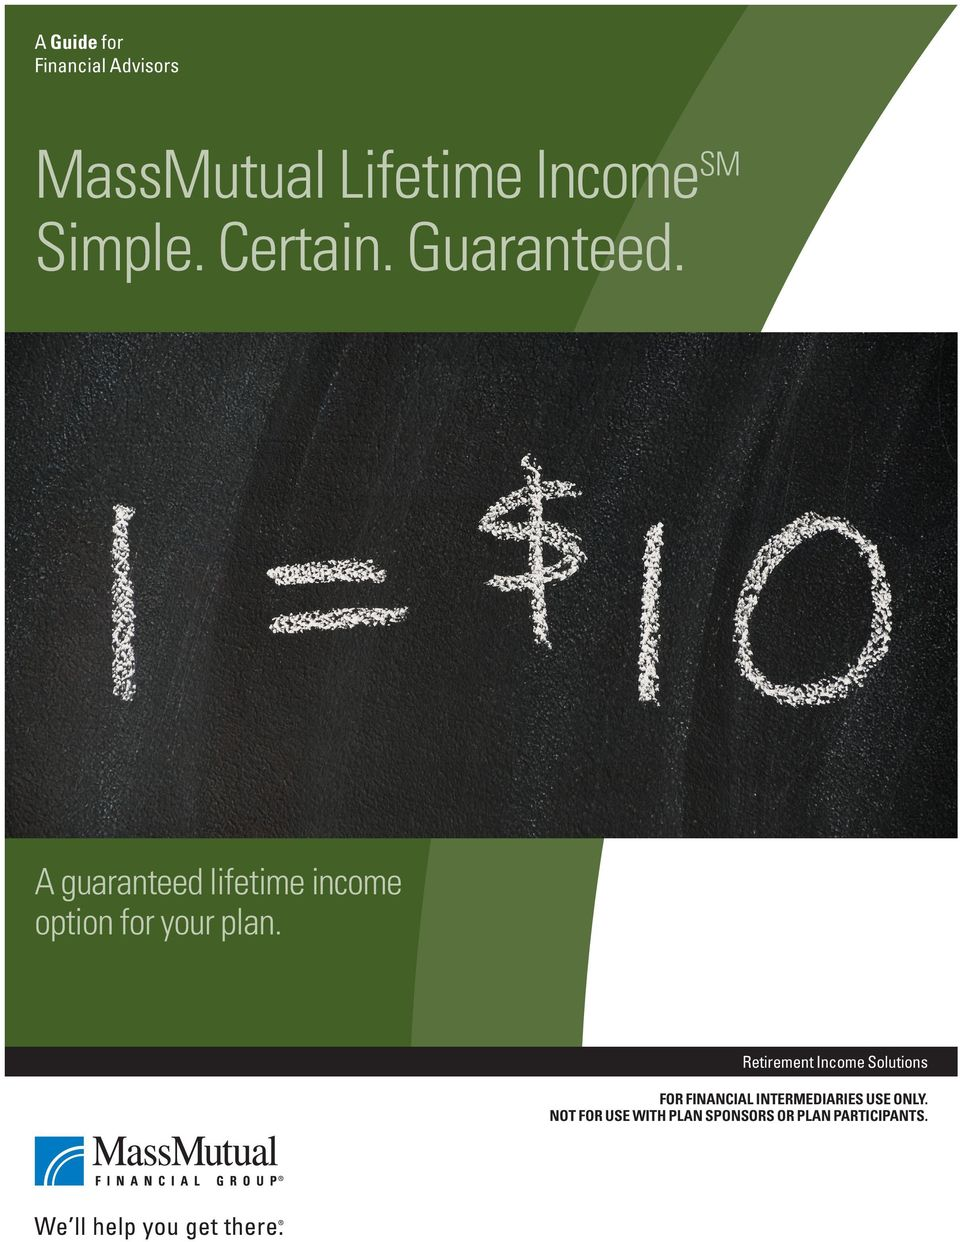 A guaranteed lifetime income option for your plan.